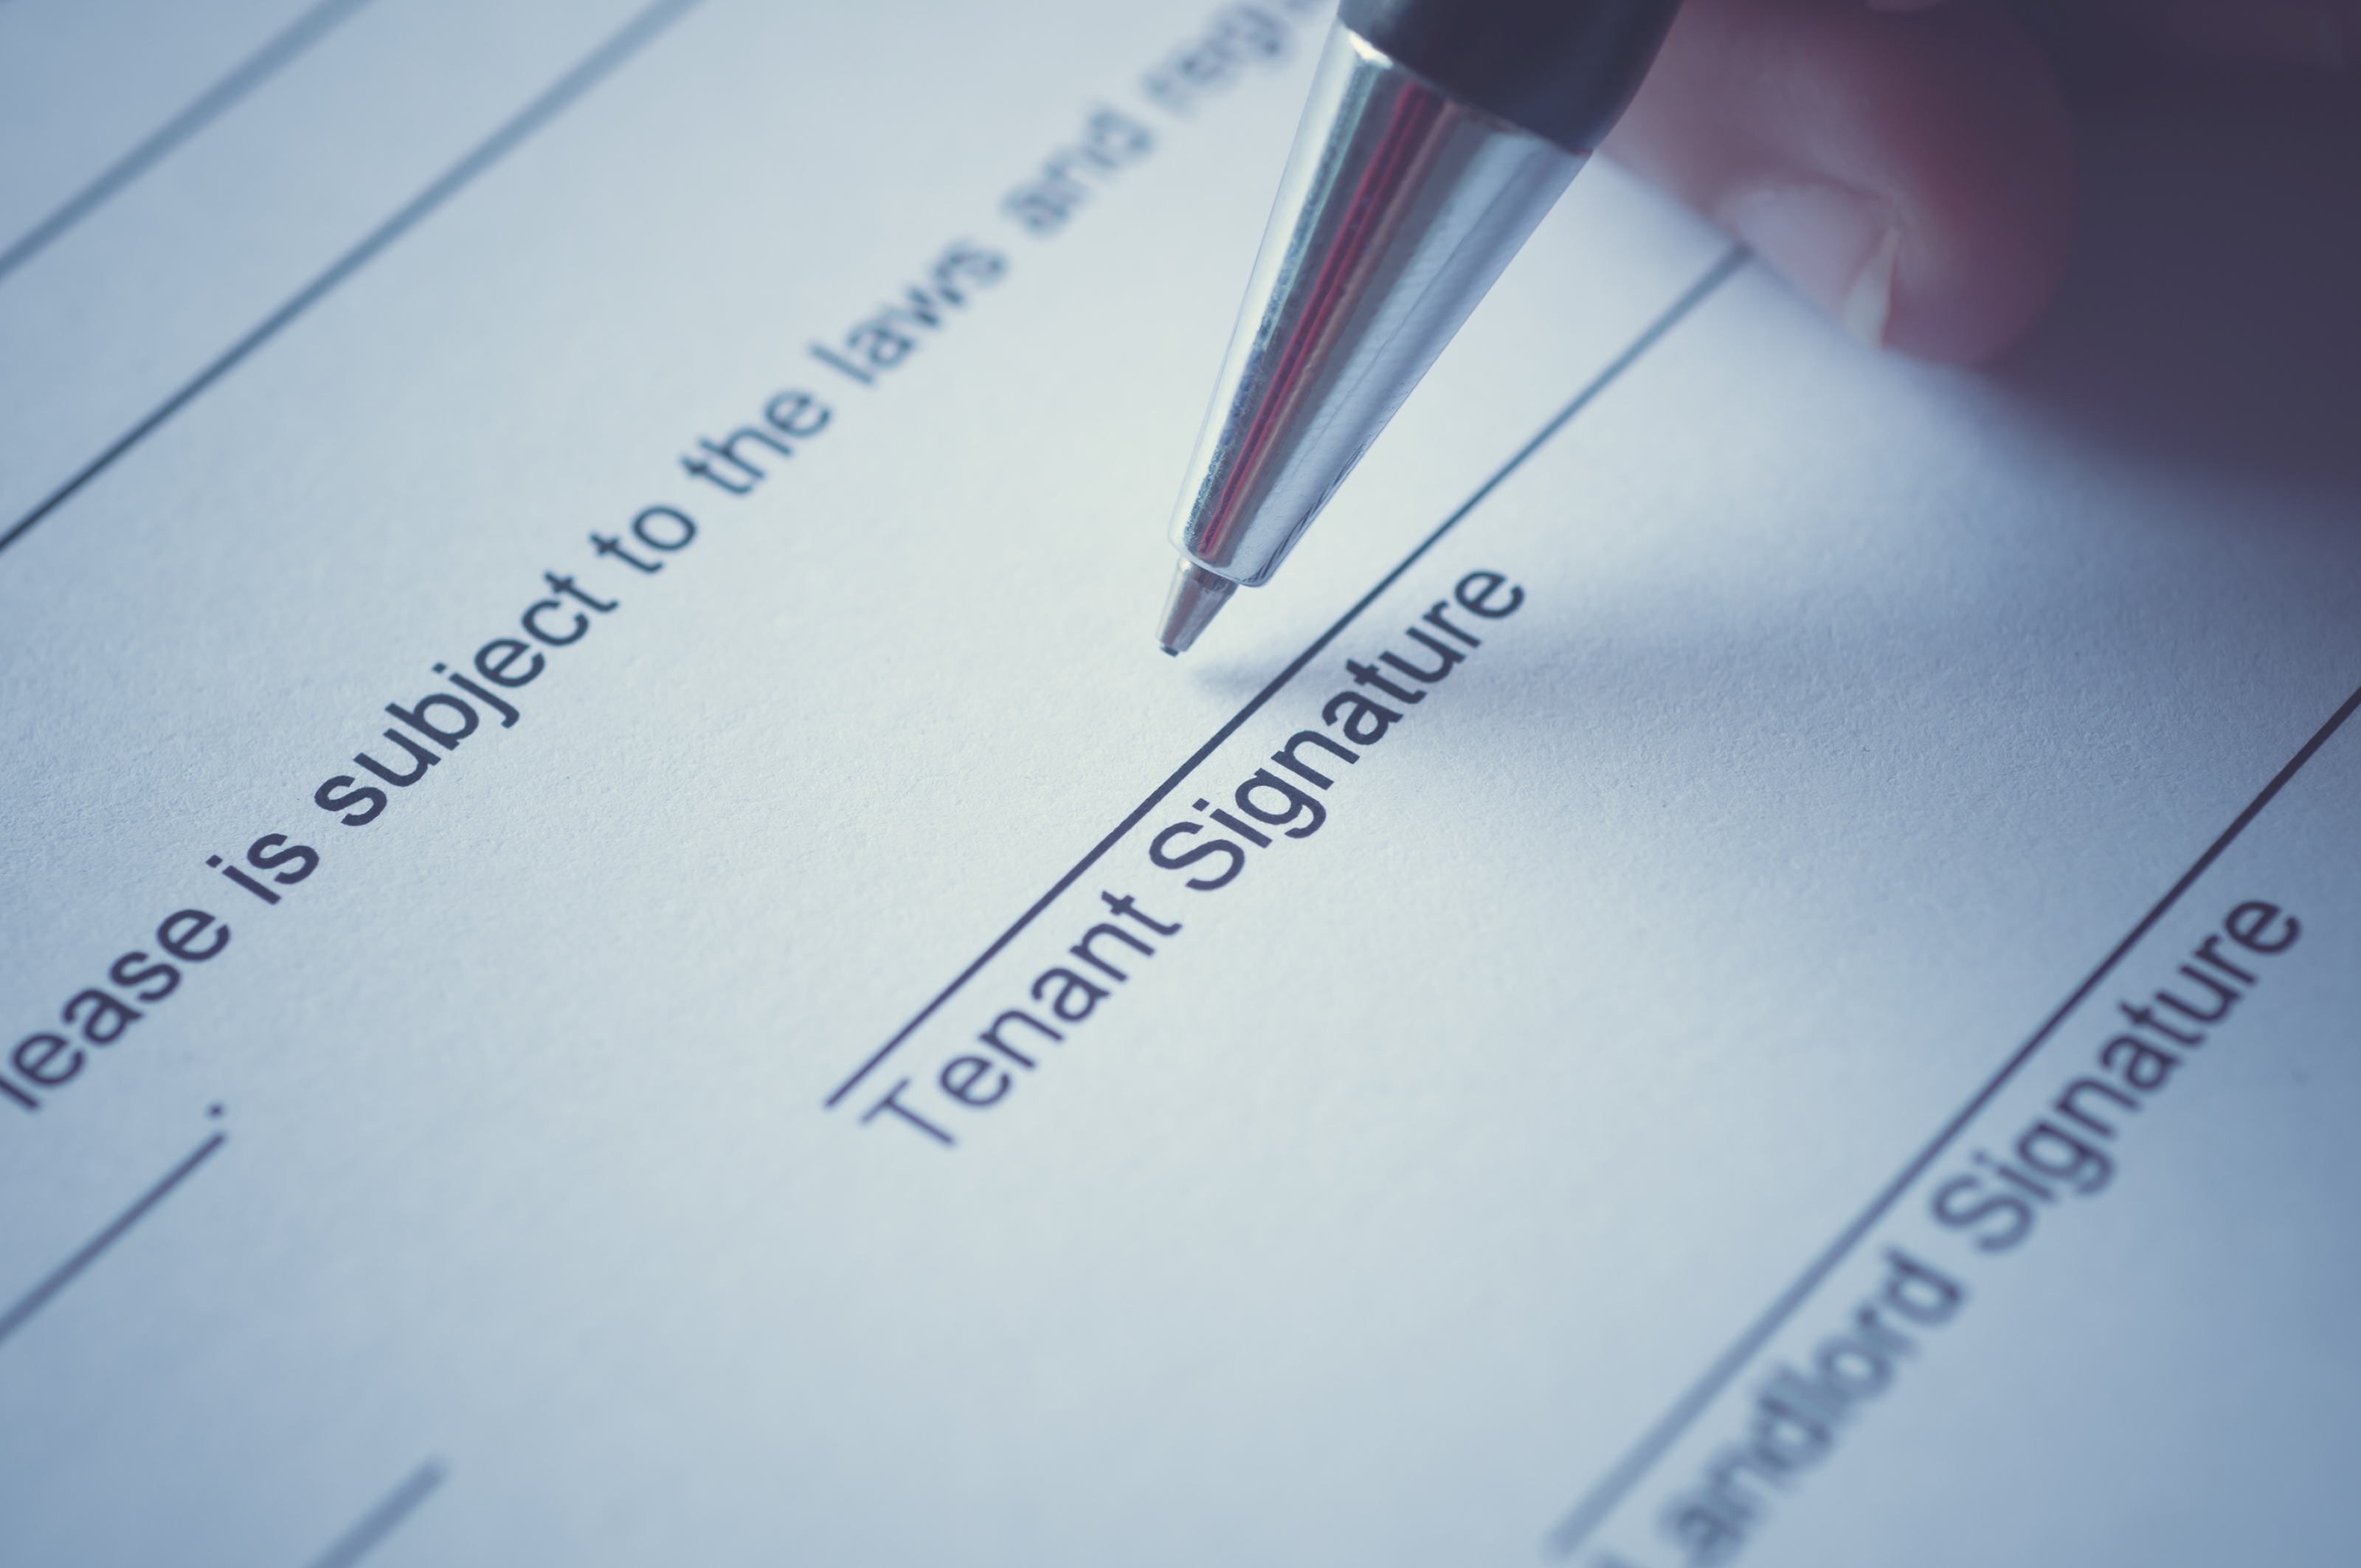 Rental agreement form with signing hand and pen.